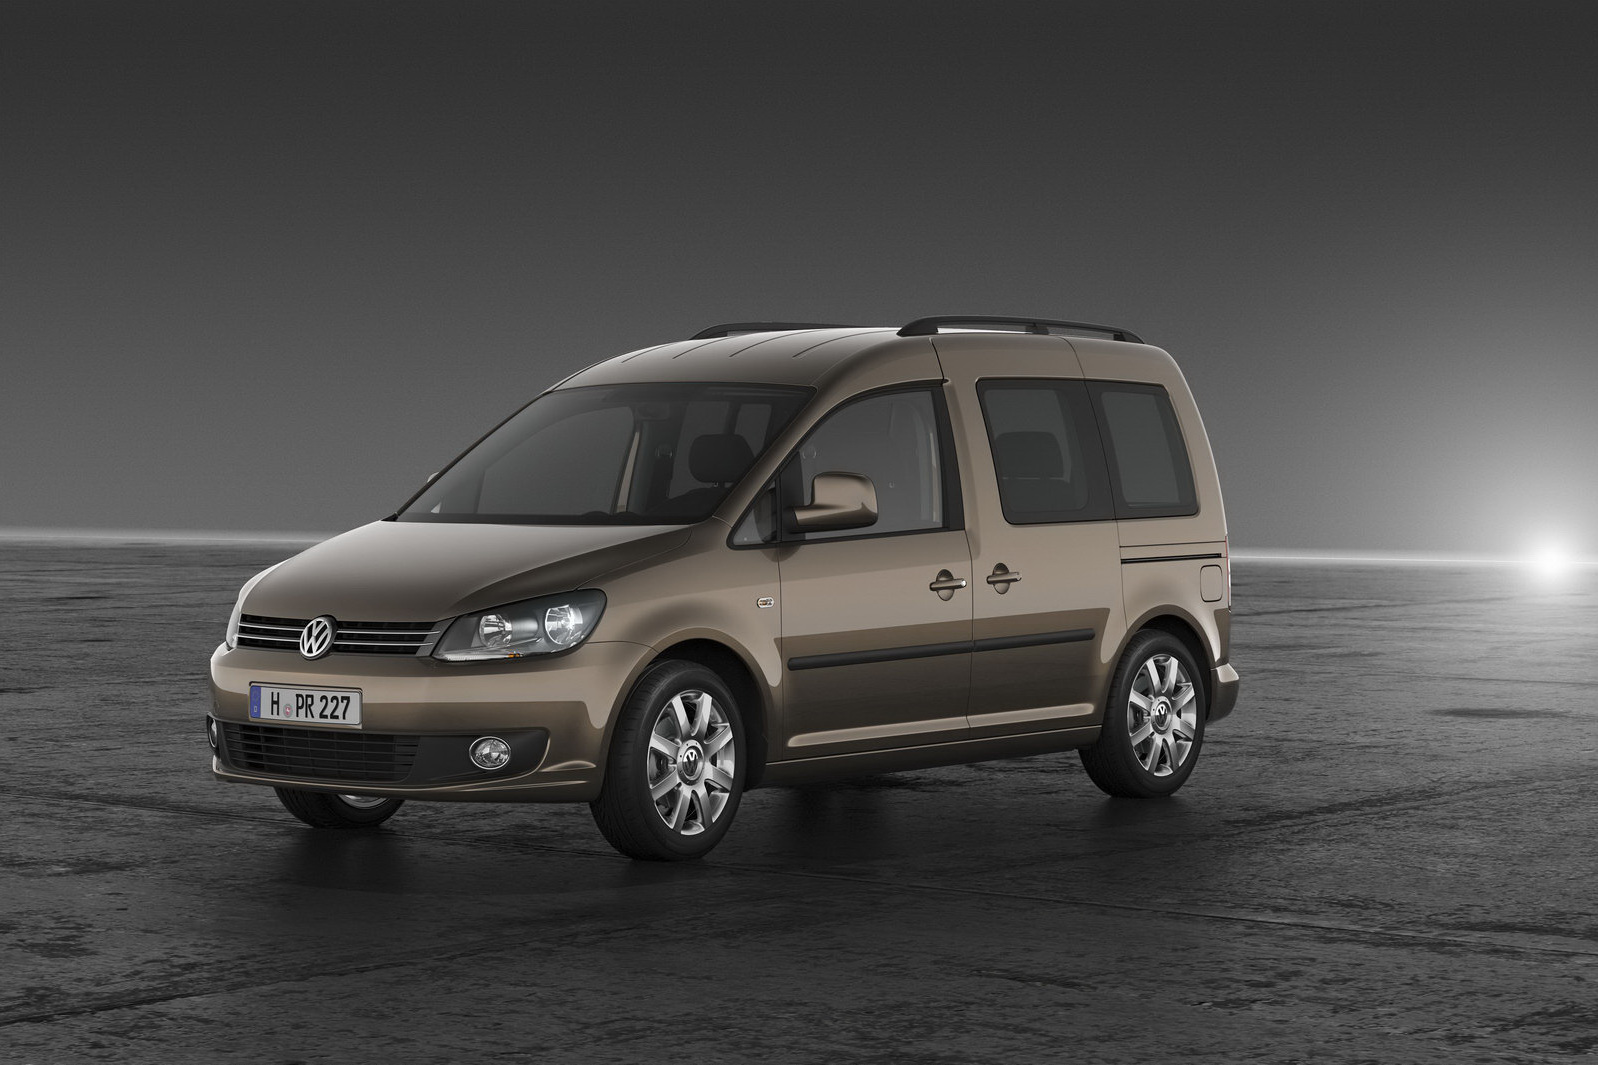 2012 Volkswagen Caddy #16